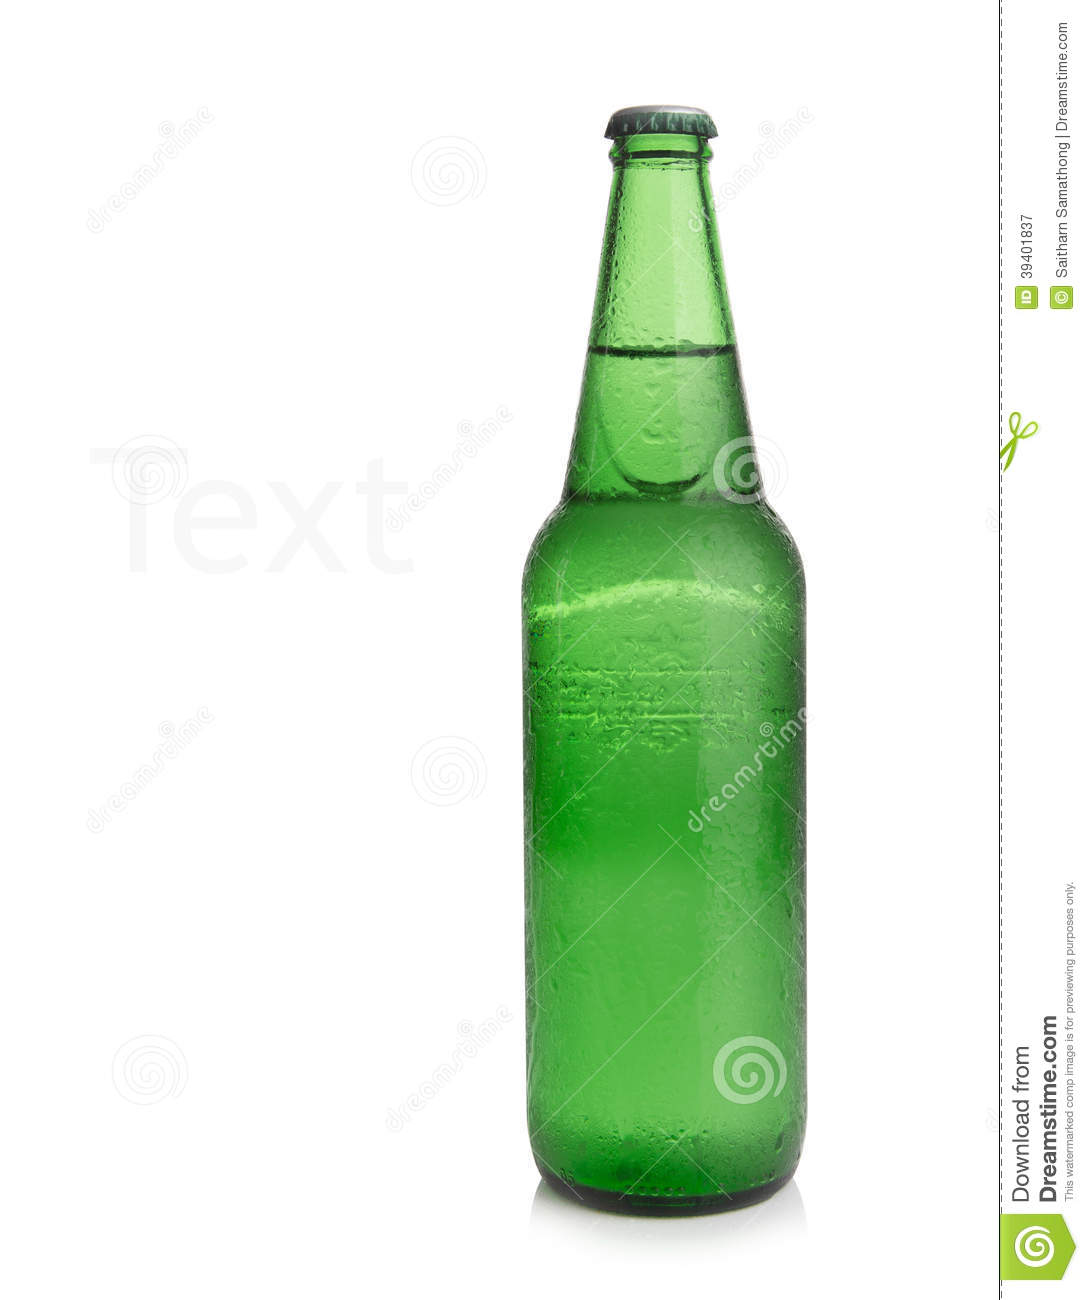 Cool white background - Background Beer Bottle Cool Green Isolated White